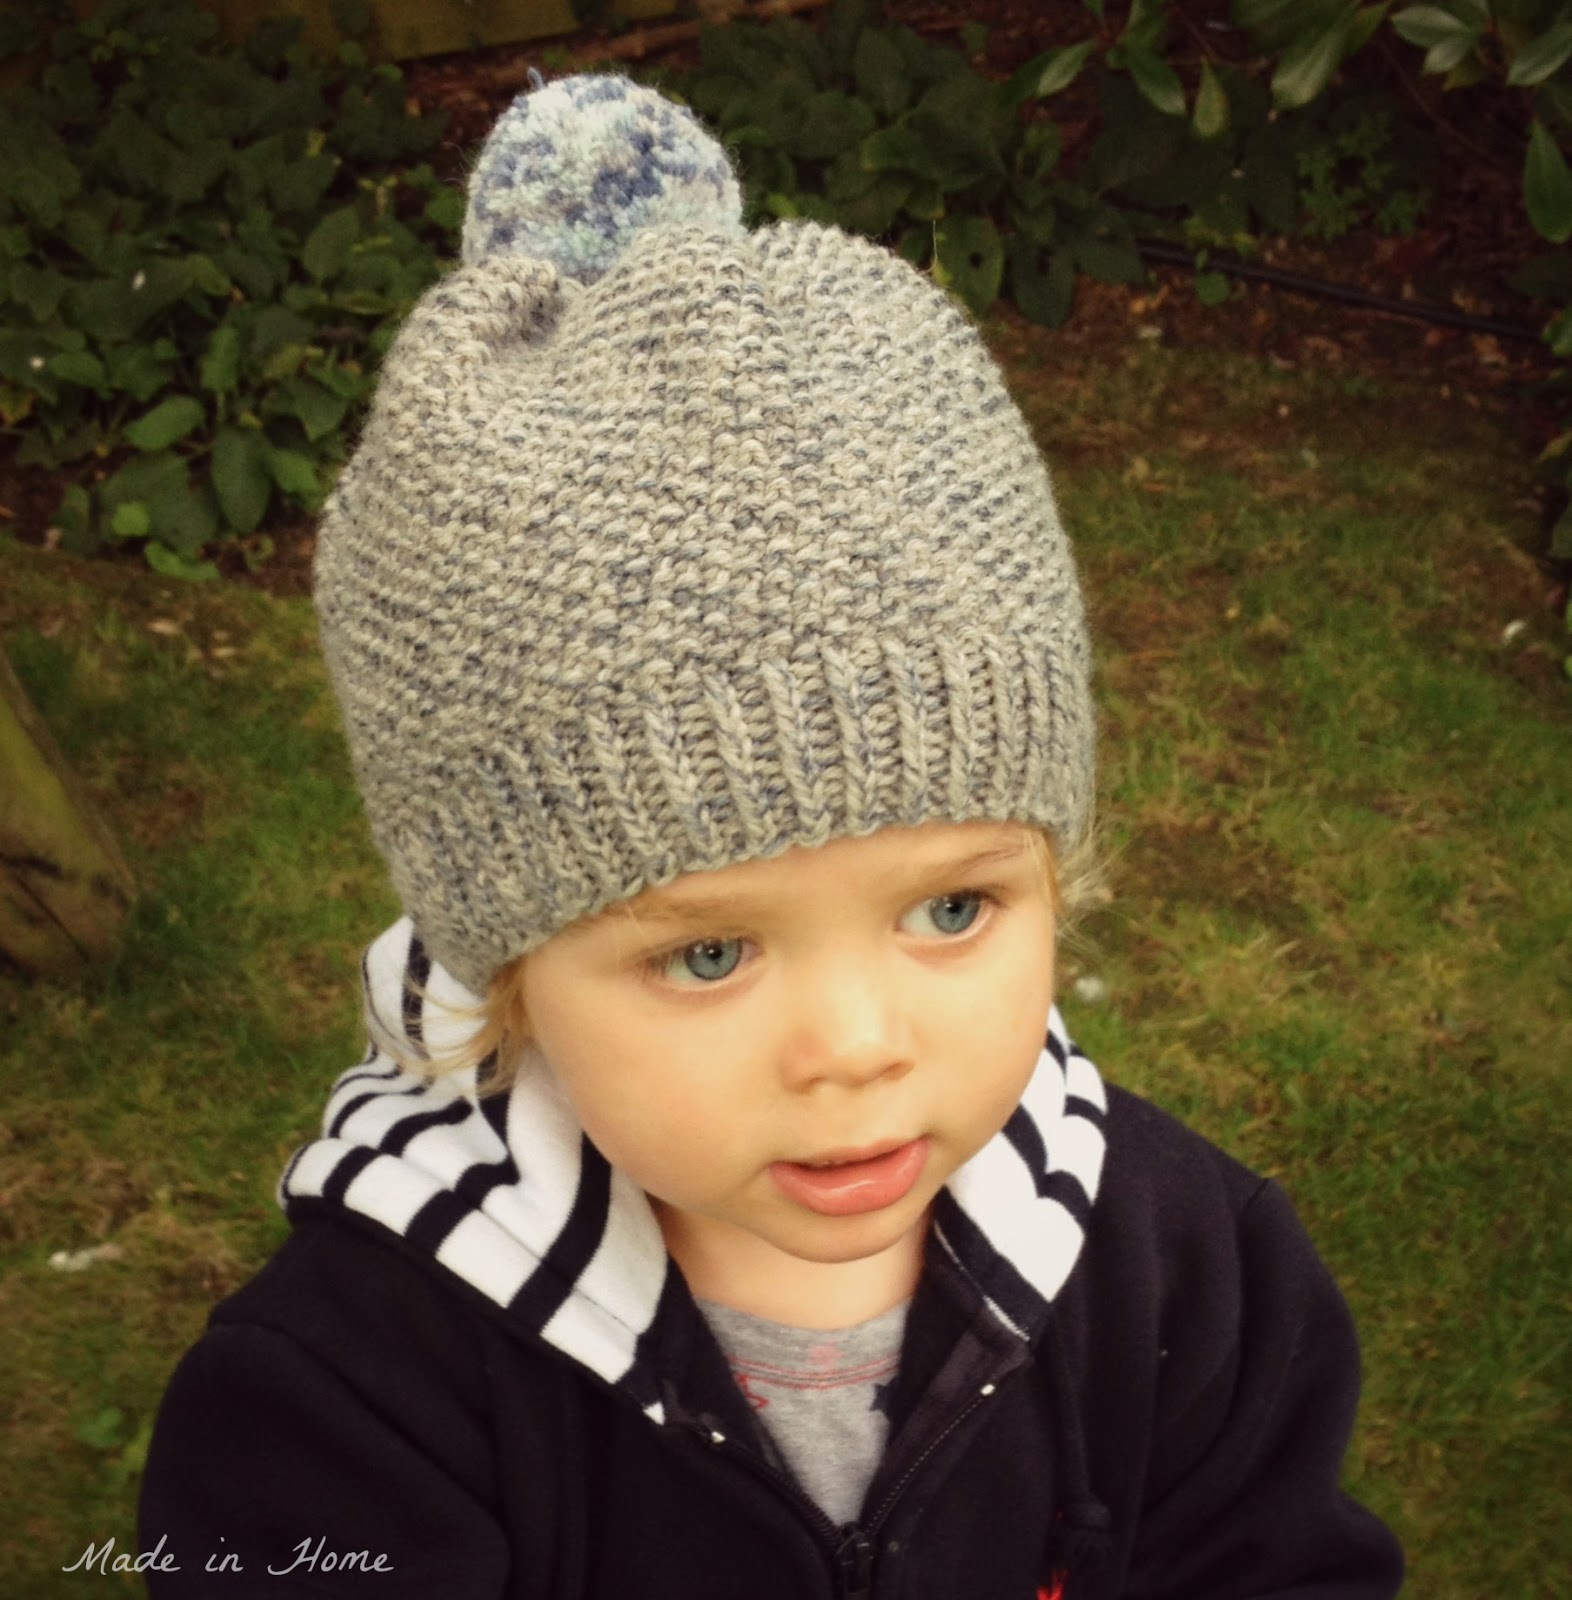 Knitting Pattern For A Toddlers Beanie : Made in Home: Toddler Pompom Beanie Hat A free pattern ...